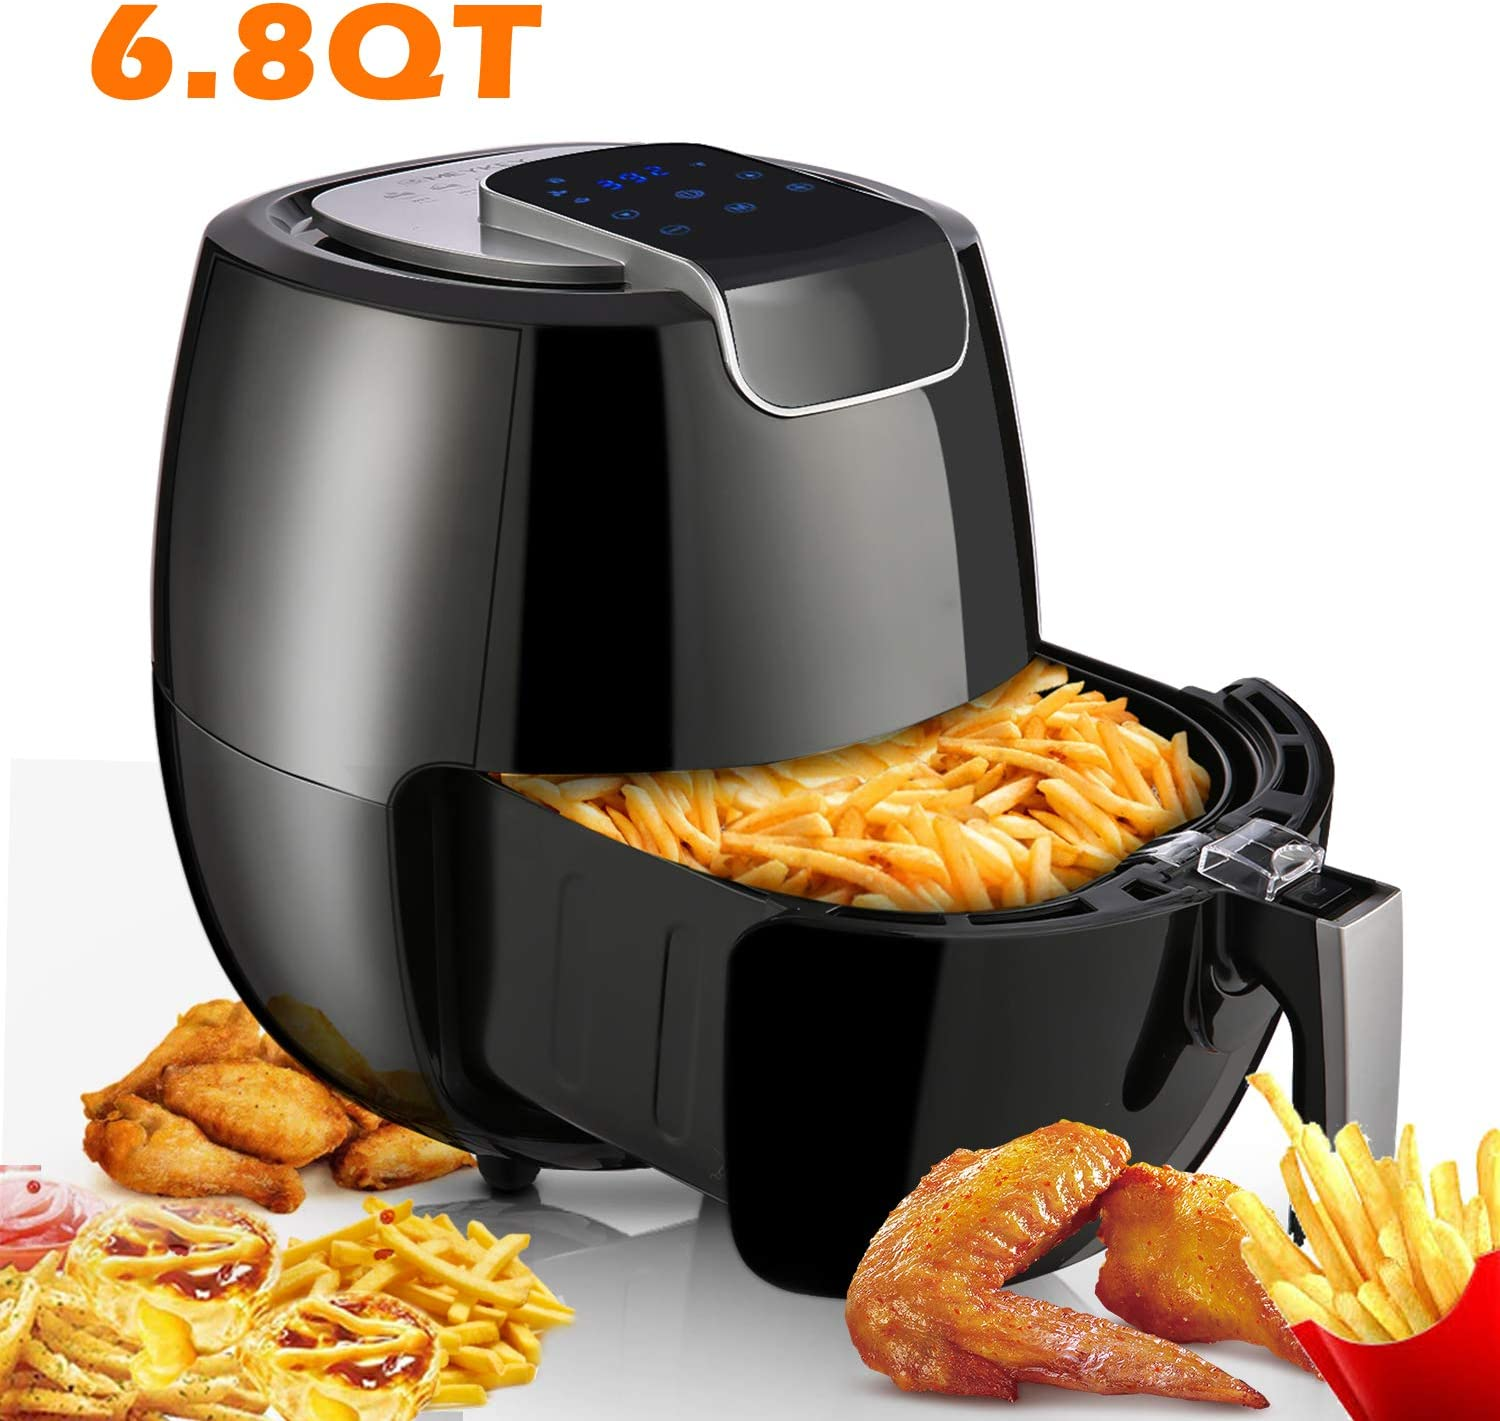 Air Fryer XL 6.8QT, 1800W Electric Hot Air Fryers Oven Oilless Cooker, LCD Digital Touchscreen, 8 Cooking Presets, Preheat Nonstick Basket for Fast Healthier Fried Food